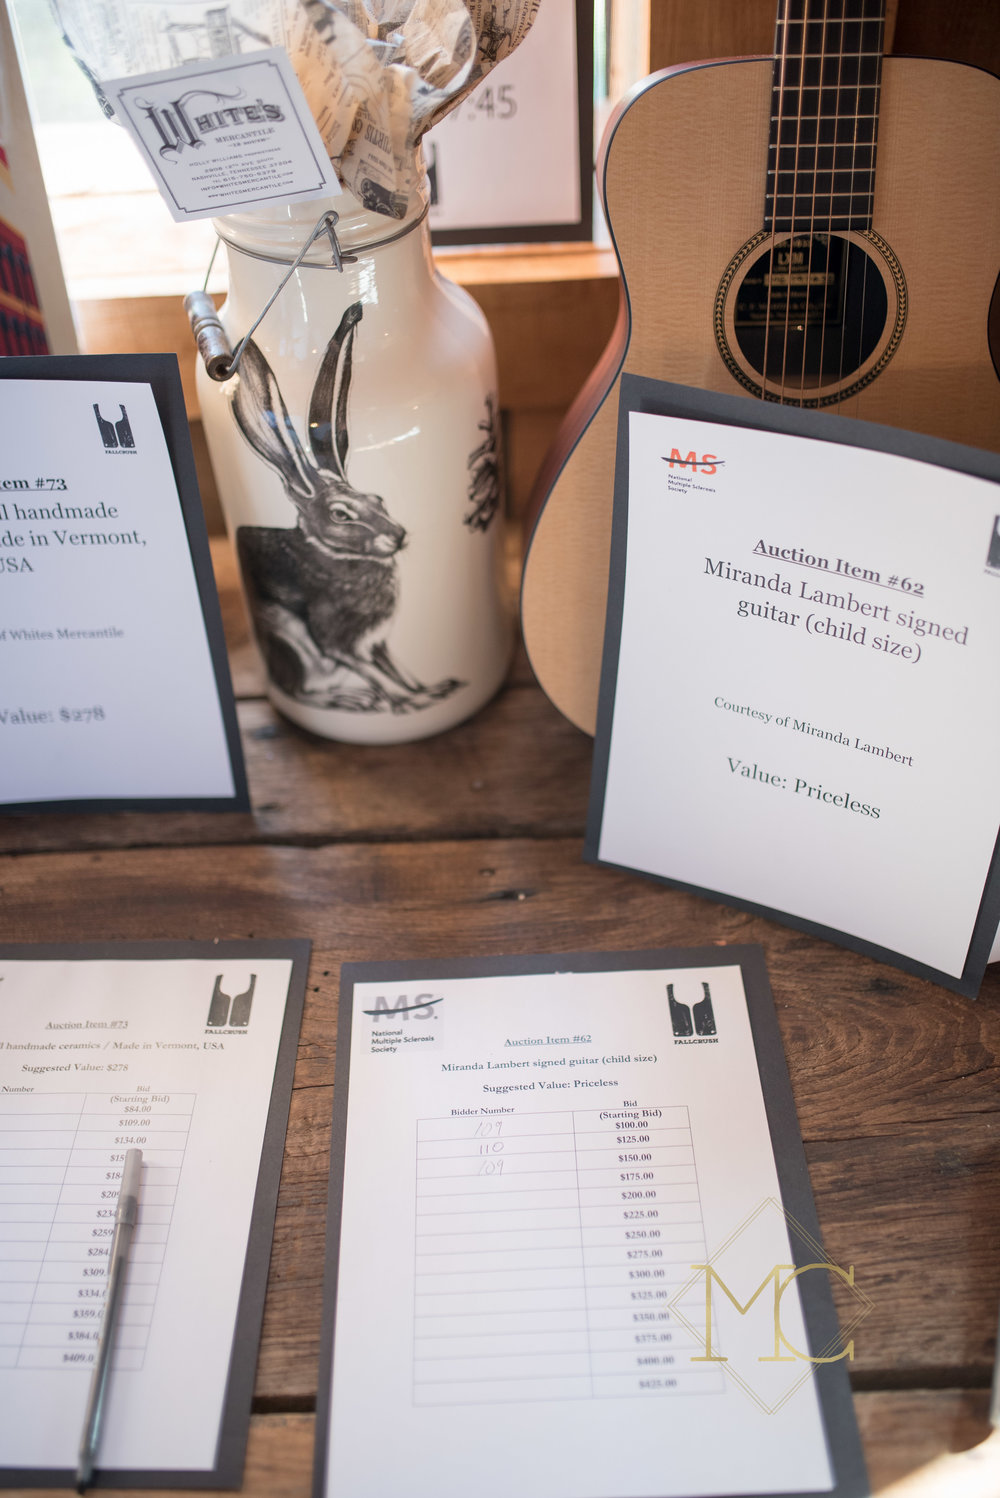 image from multiple sclerosis nashville event of auction items